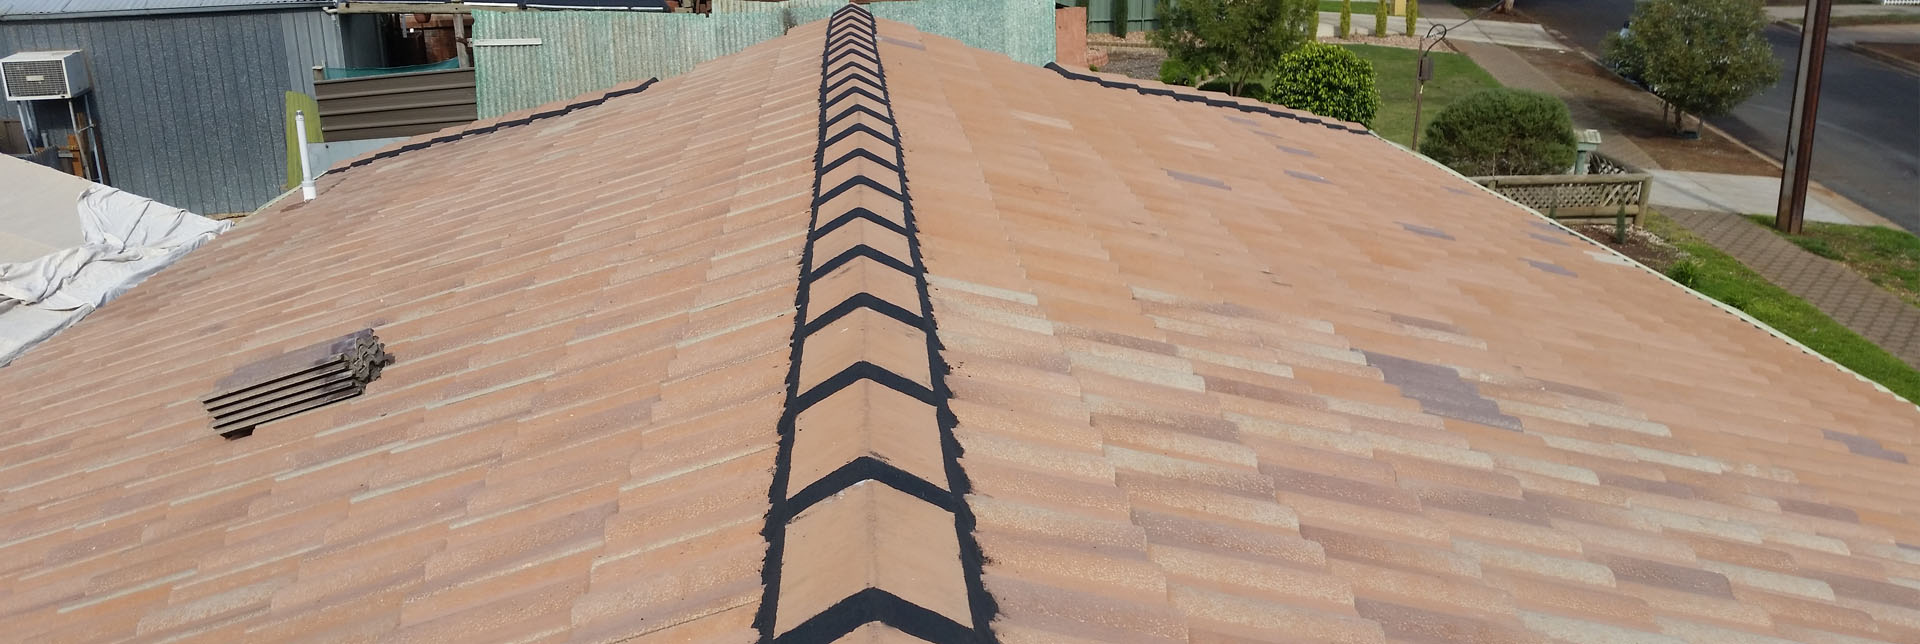 repointing-roof-adelaide